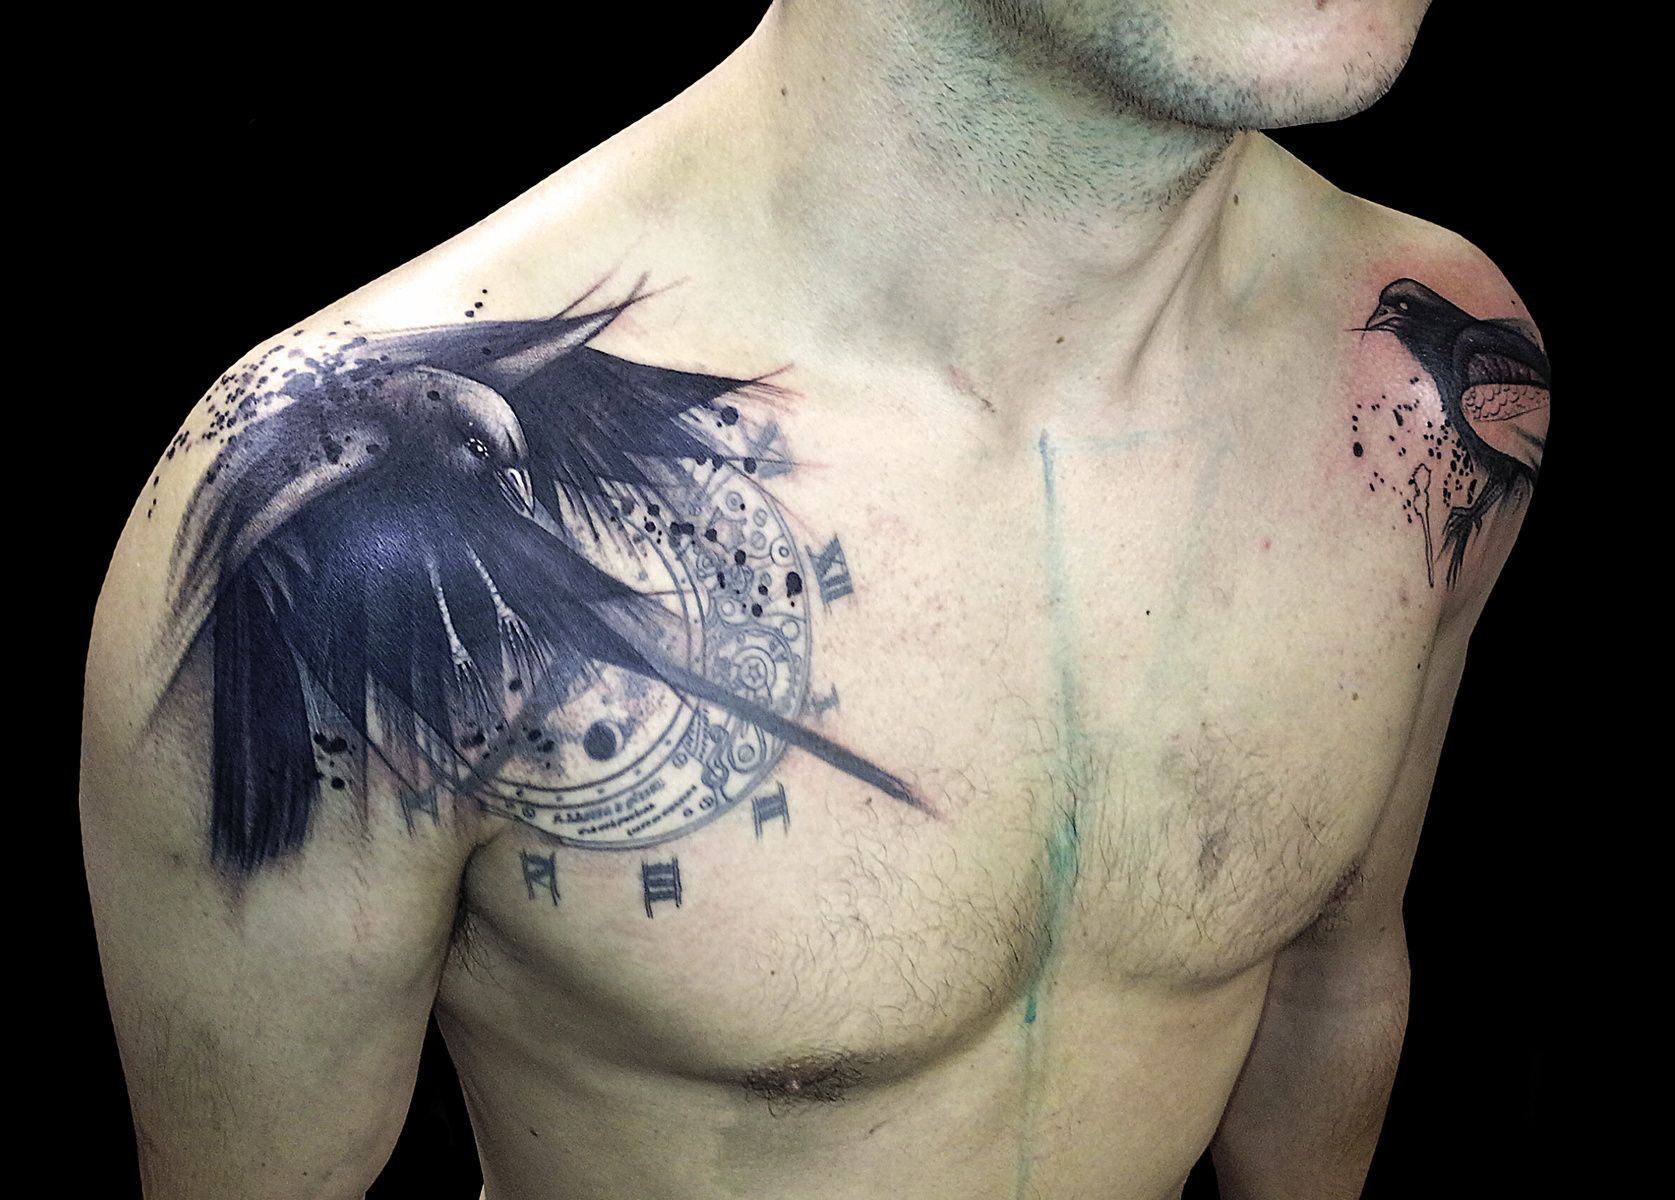 Private Parts Tattoo For Men - Crow tattoo google search